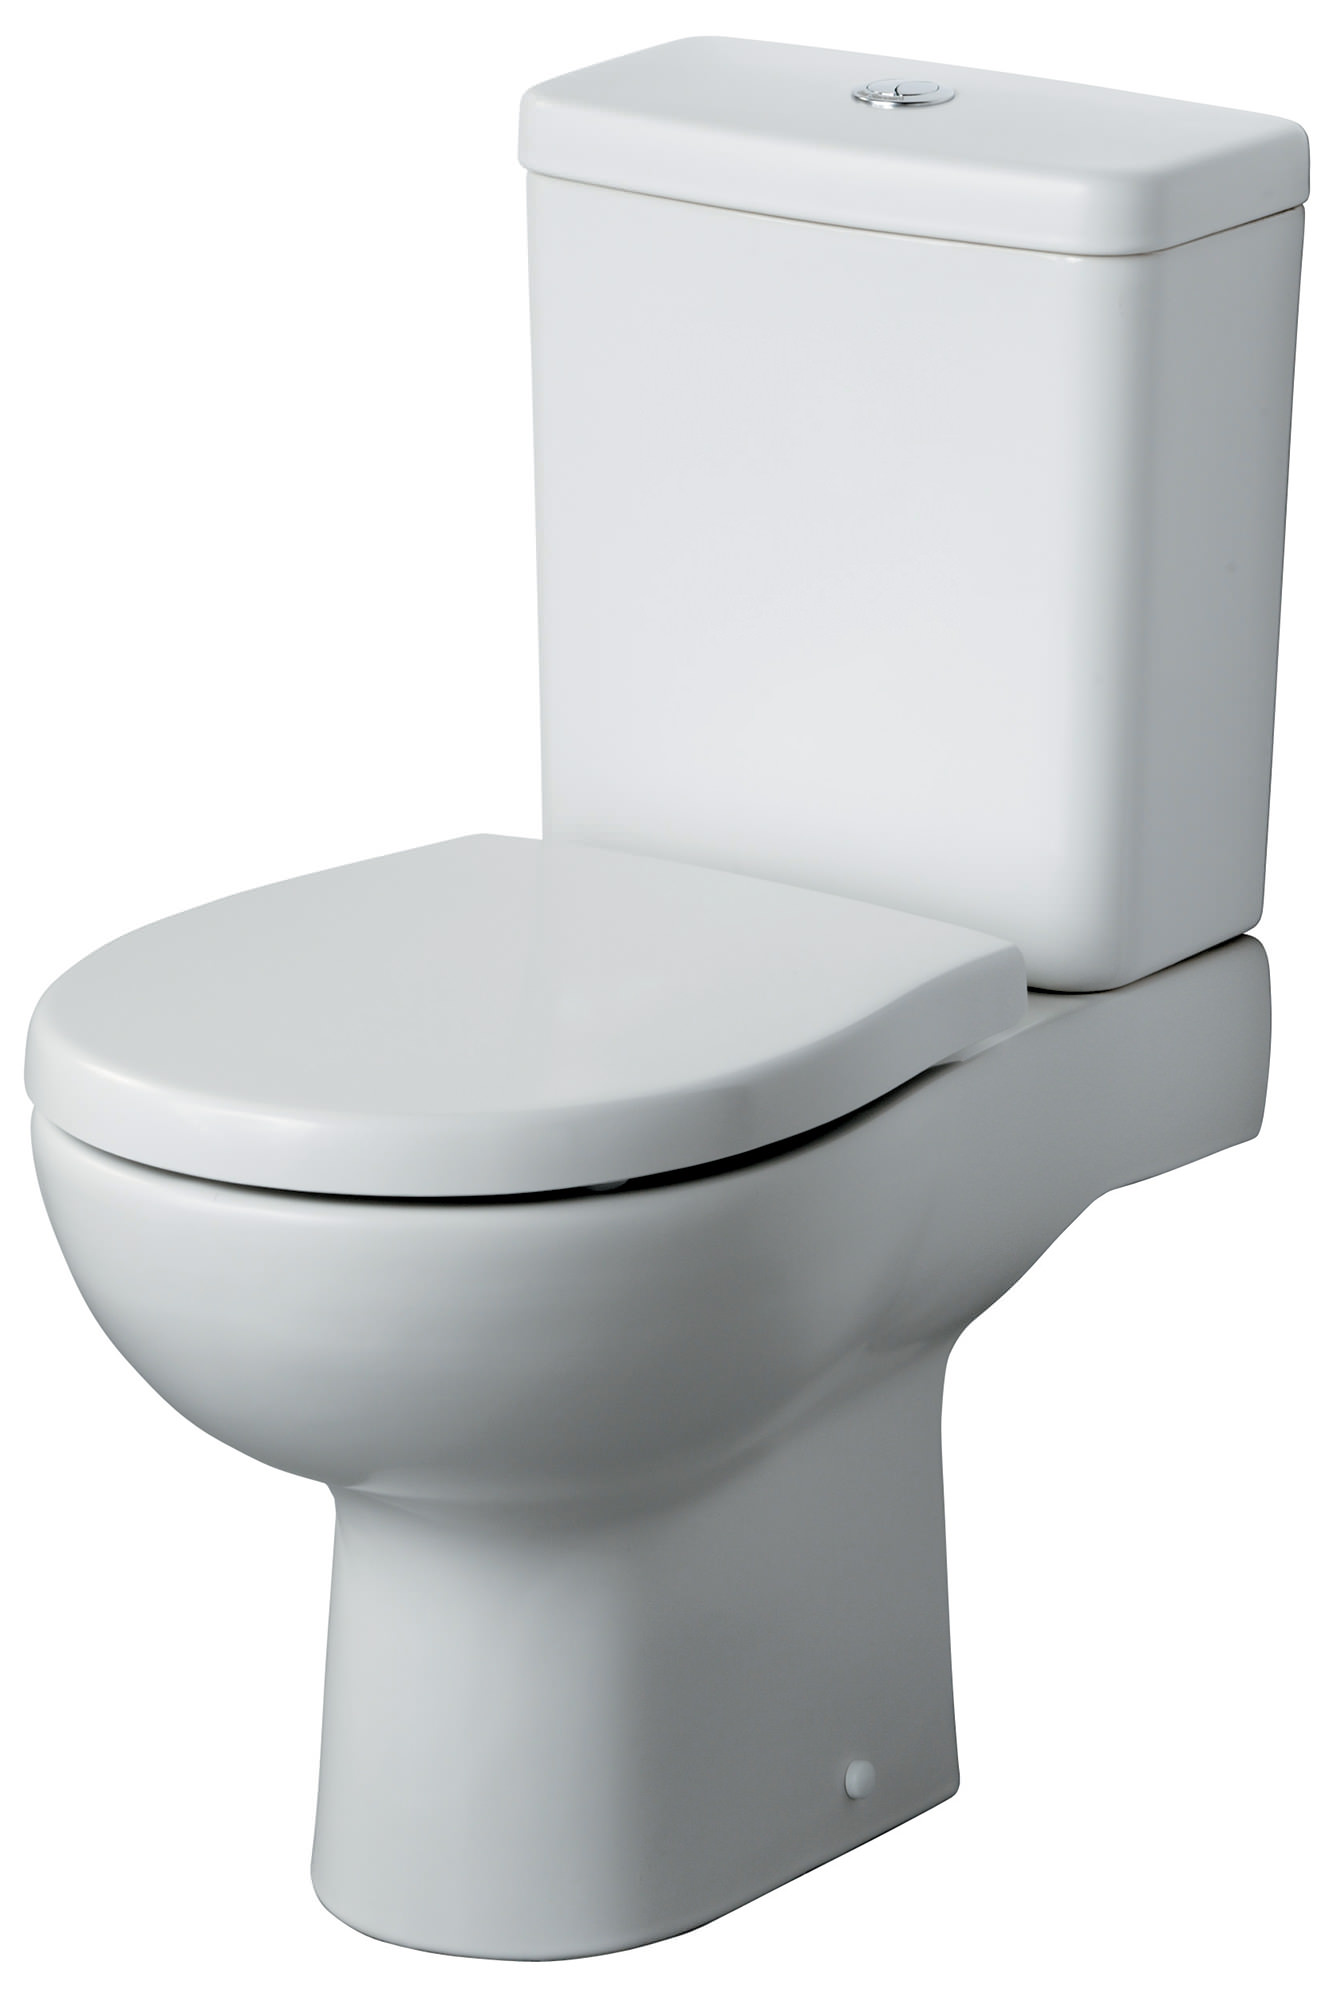 ideal standard create close coupled wc pan 650mm with cistern. Black Bedroom Furniture Sets. Home Design Ideas